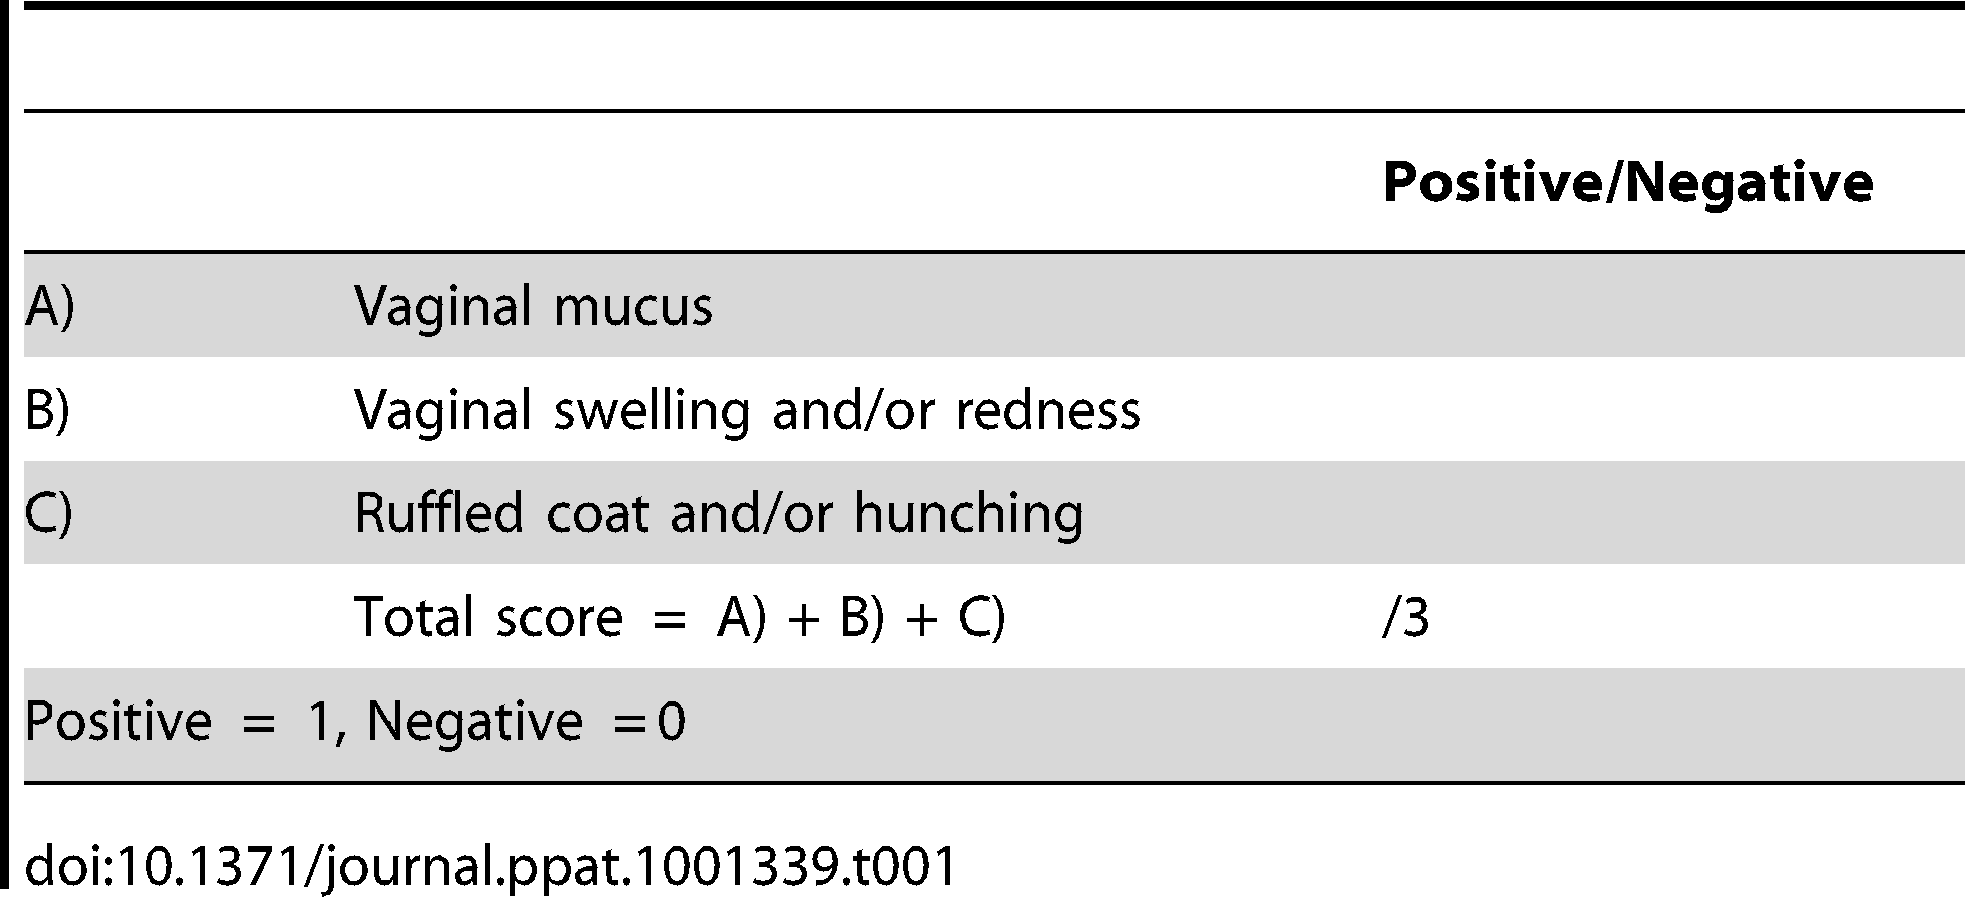 Clinical scoring of genital tract infections.